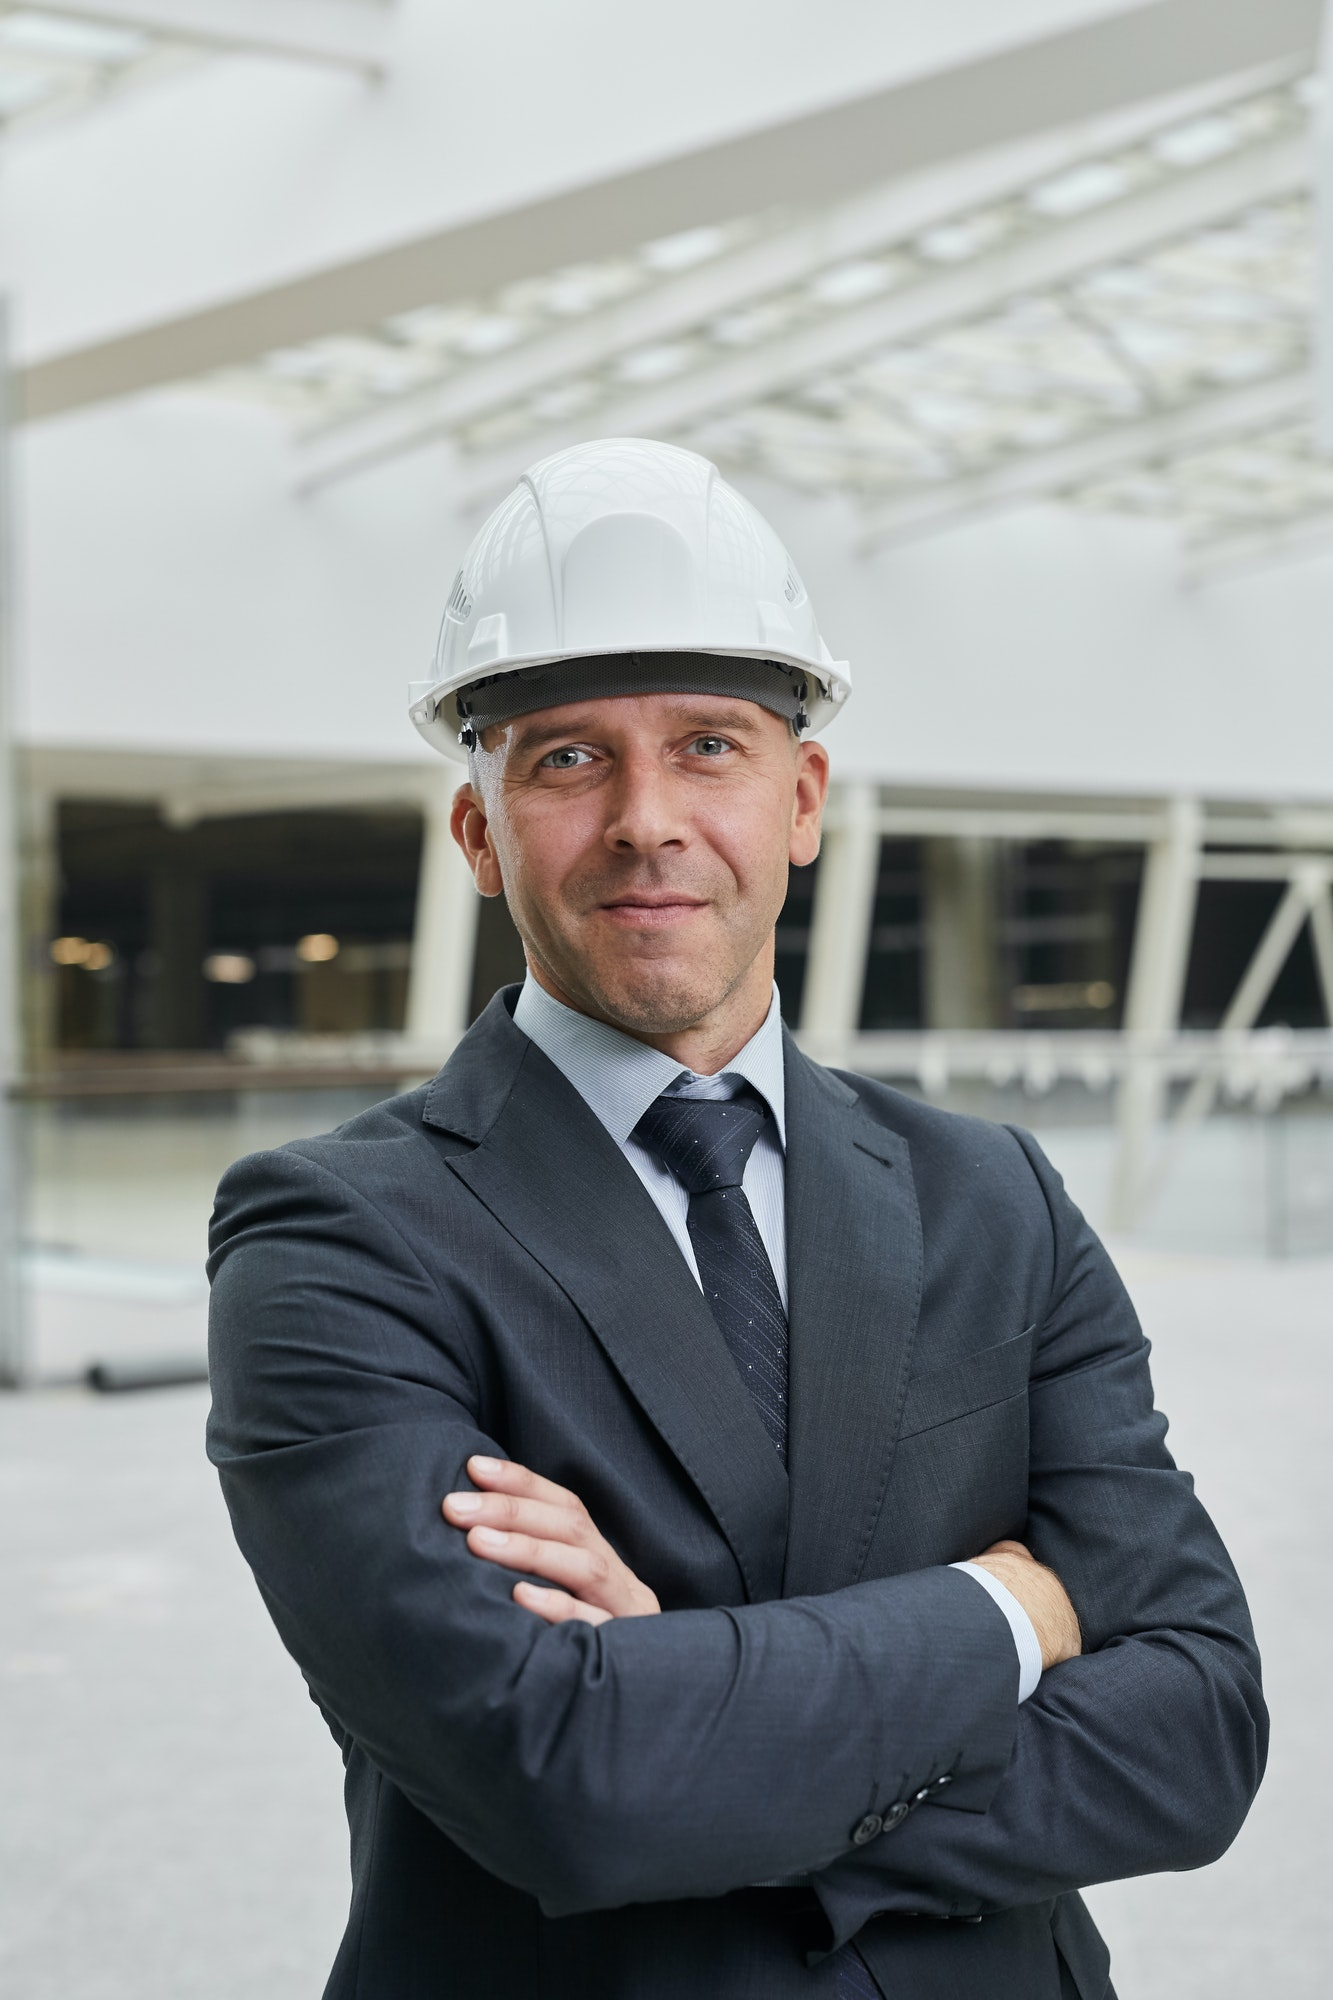 Confident Businessman at Construction Site